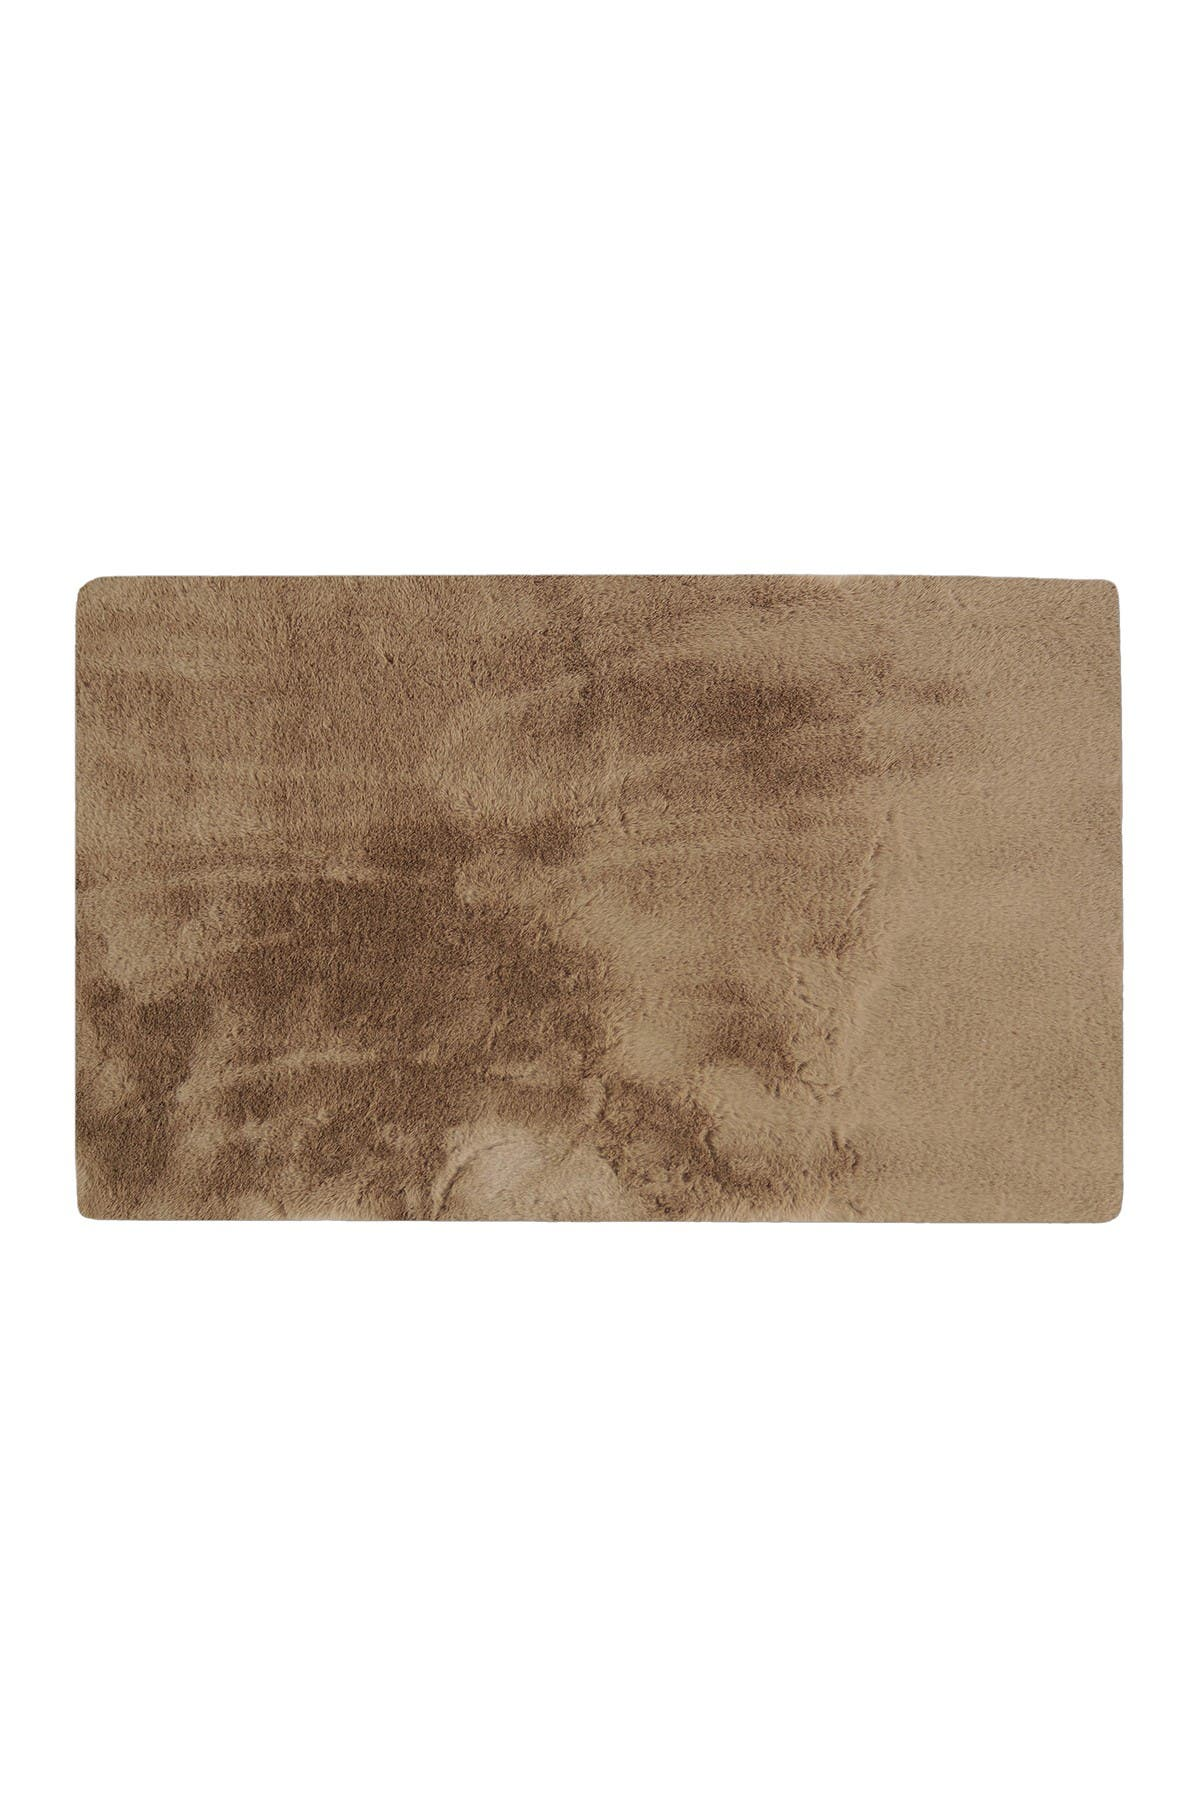 Image of LUXE Faux Fur Rectangular Throw 3' X 5' - Taupe